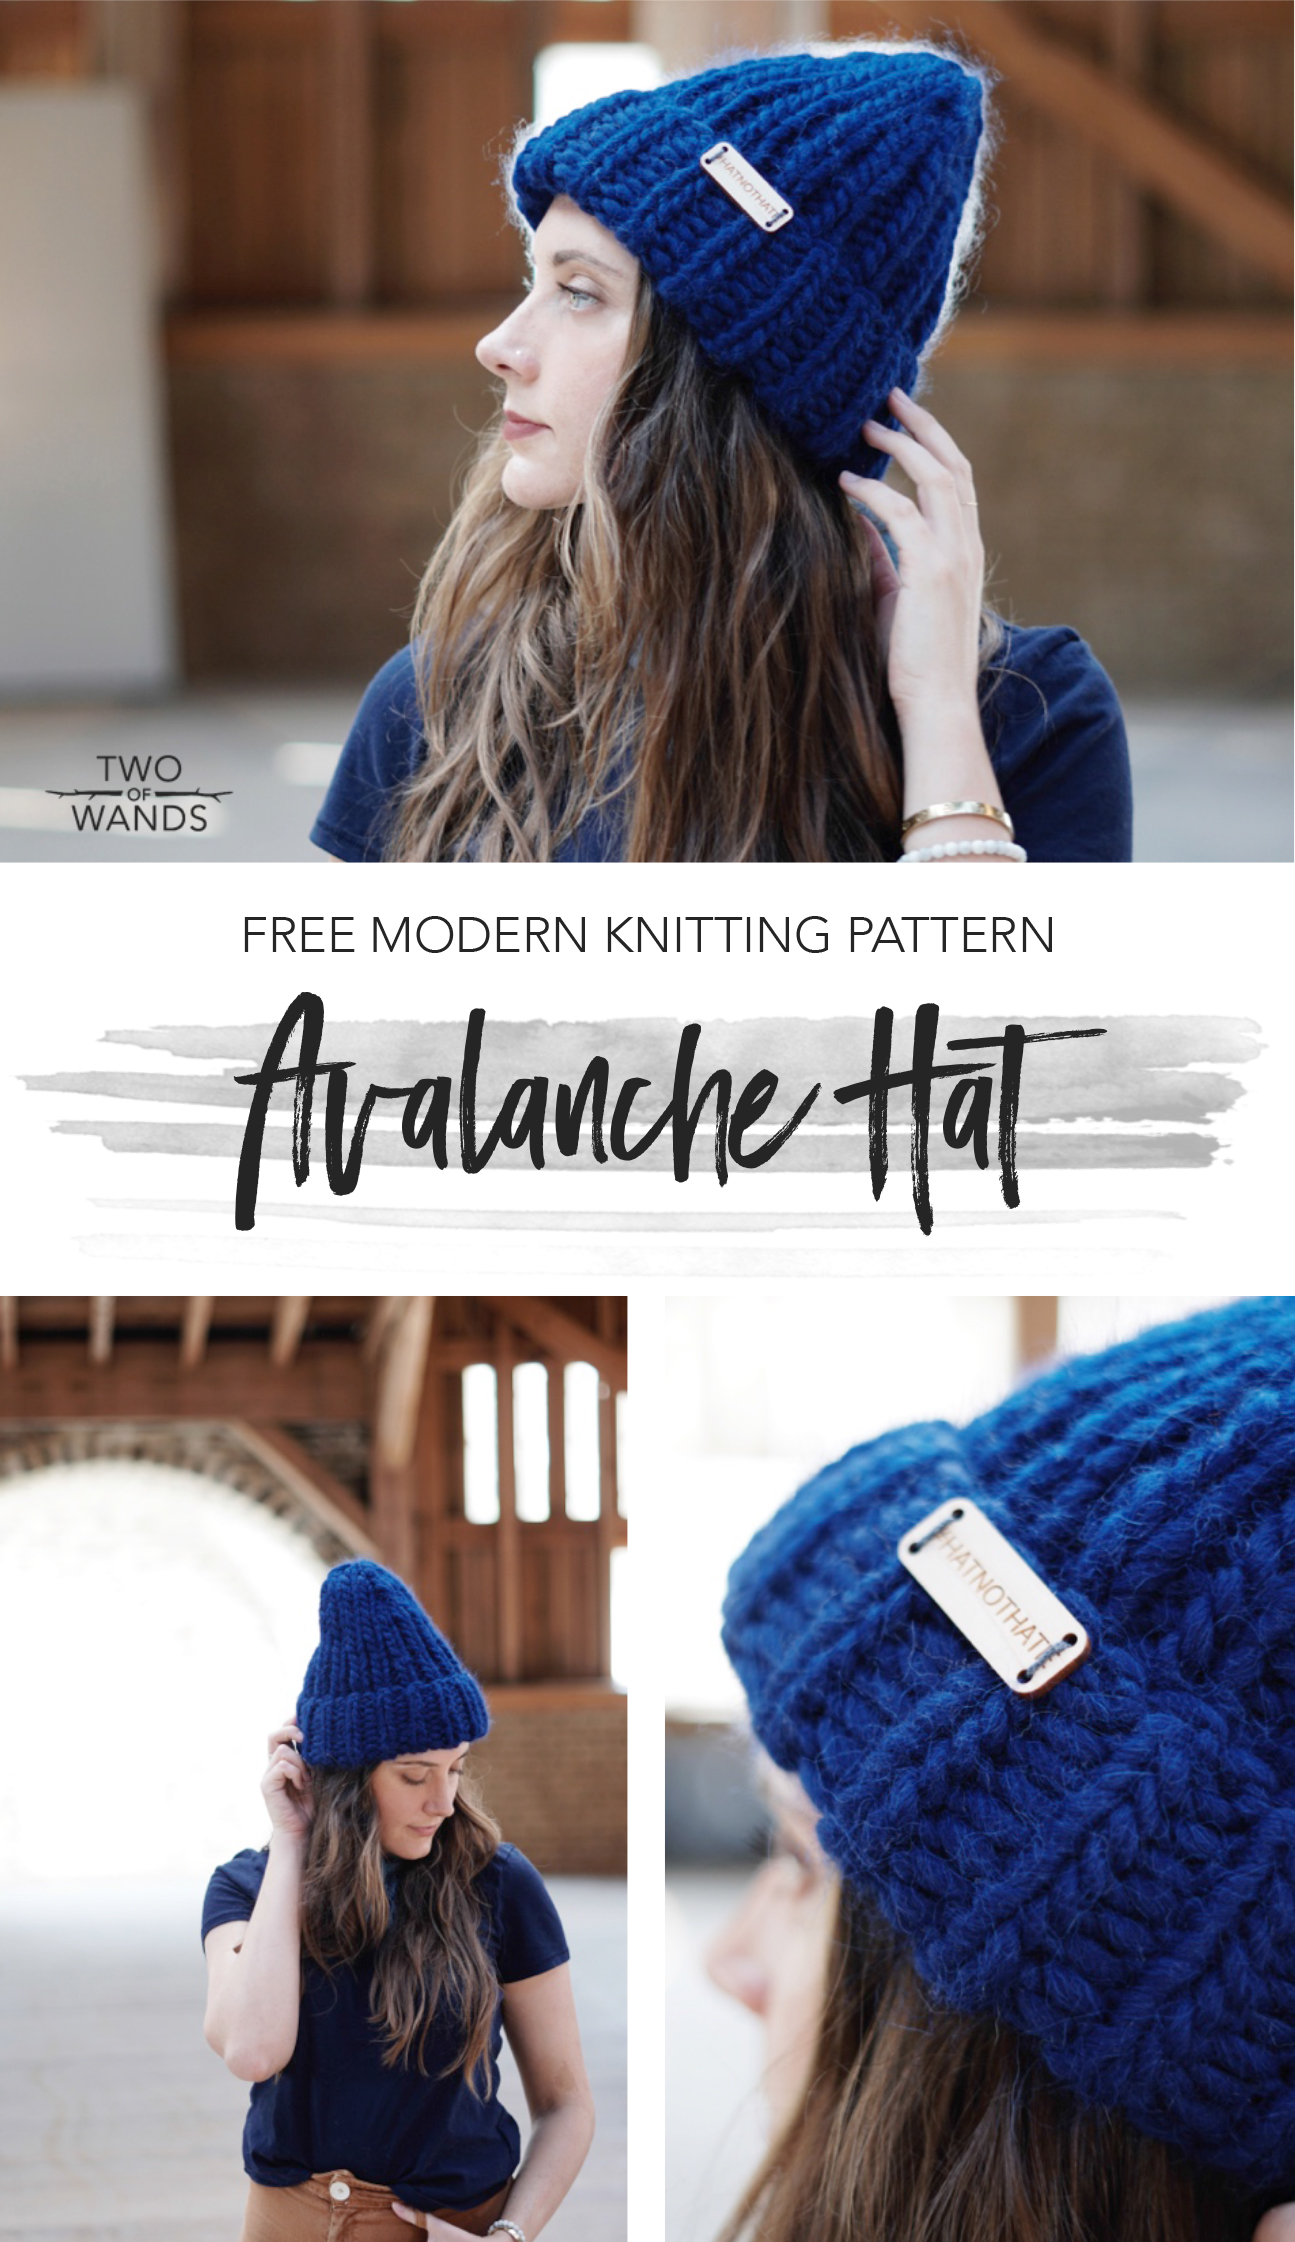 Avalanche Hat pattern by Two of Wands